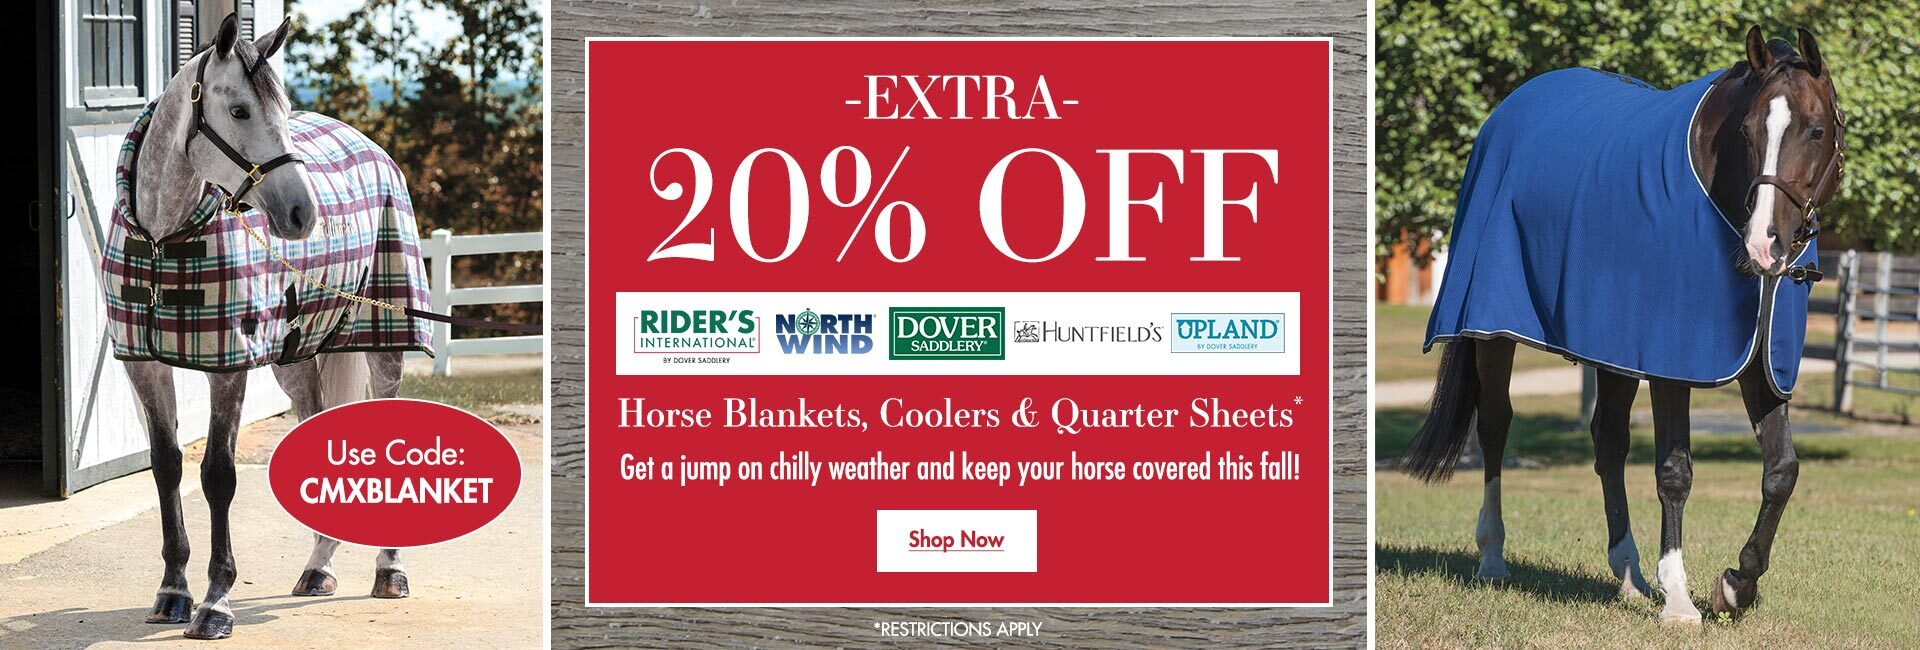 Extra 20% OFF Turnout Sheets, Stable Sheets, Coolers & Quarter Sheets - Use Code CMXBLANKET